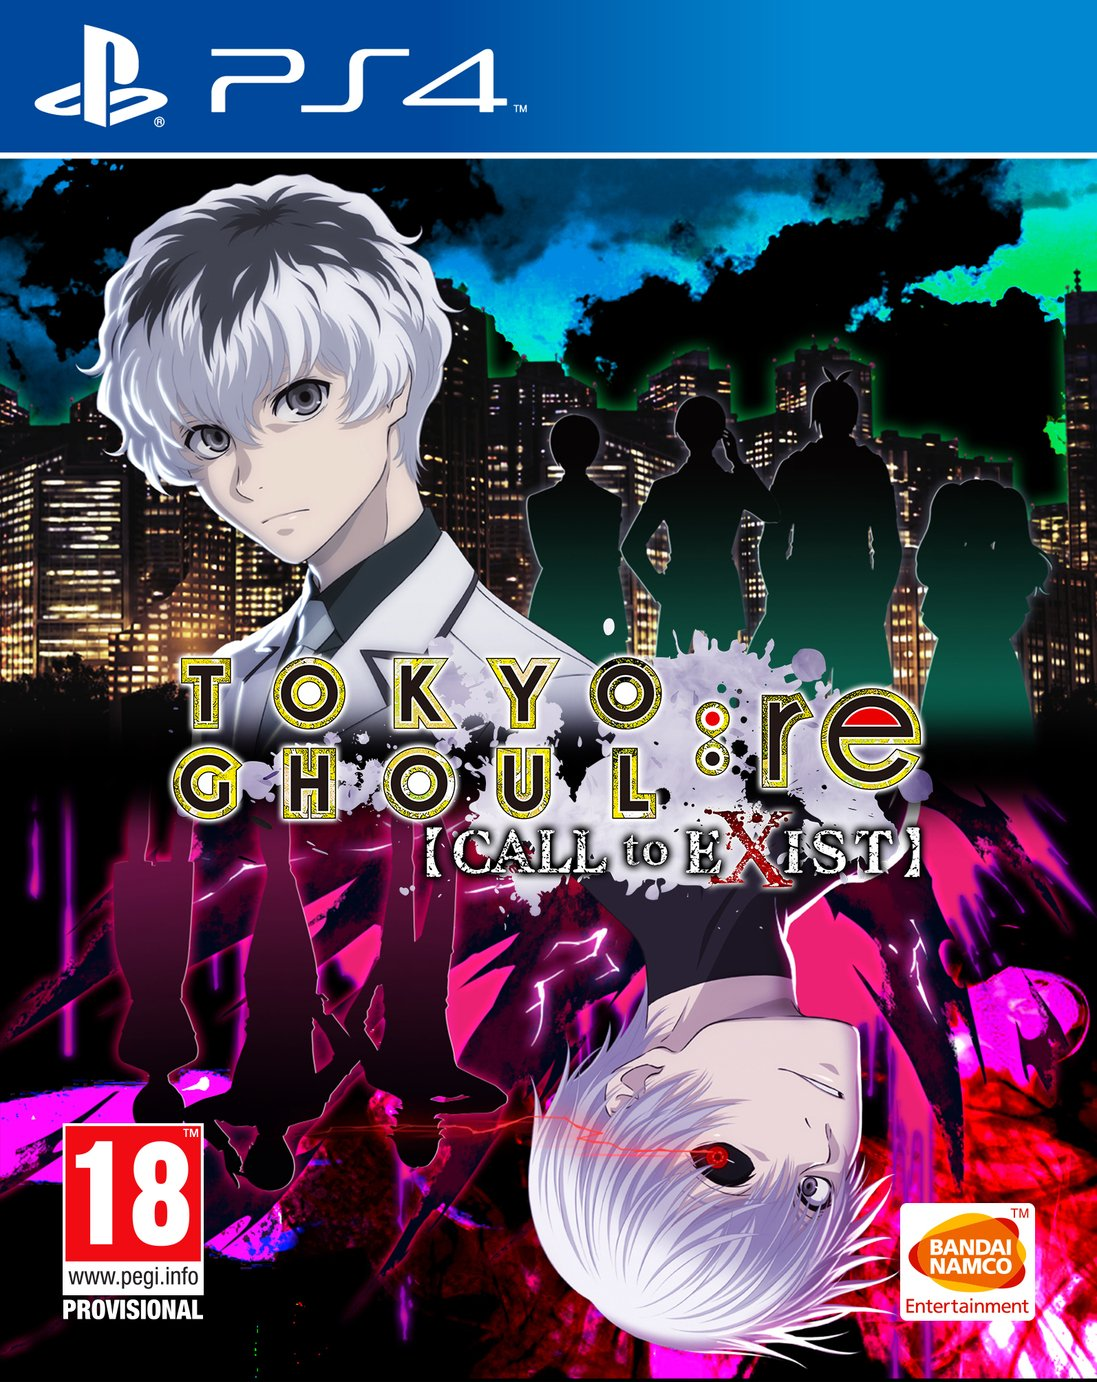 Tokyo Ghoul: Recall to Exist PS4 Pre-Order Game